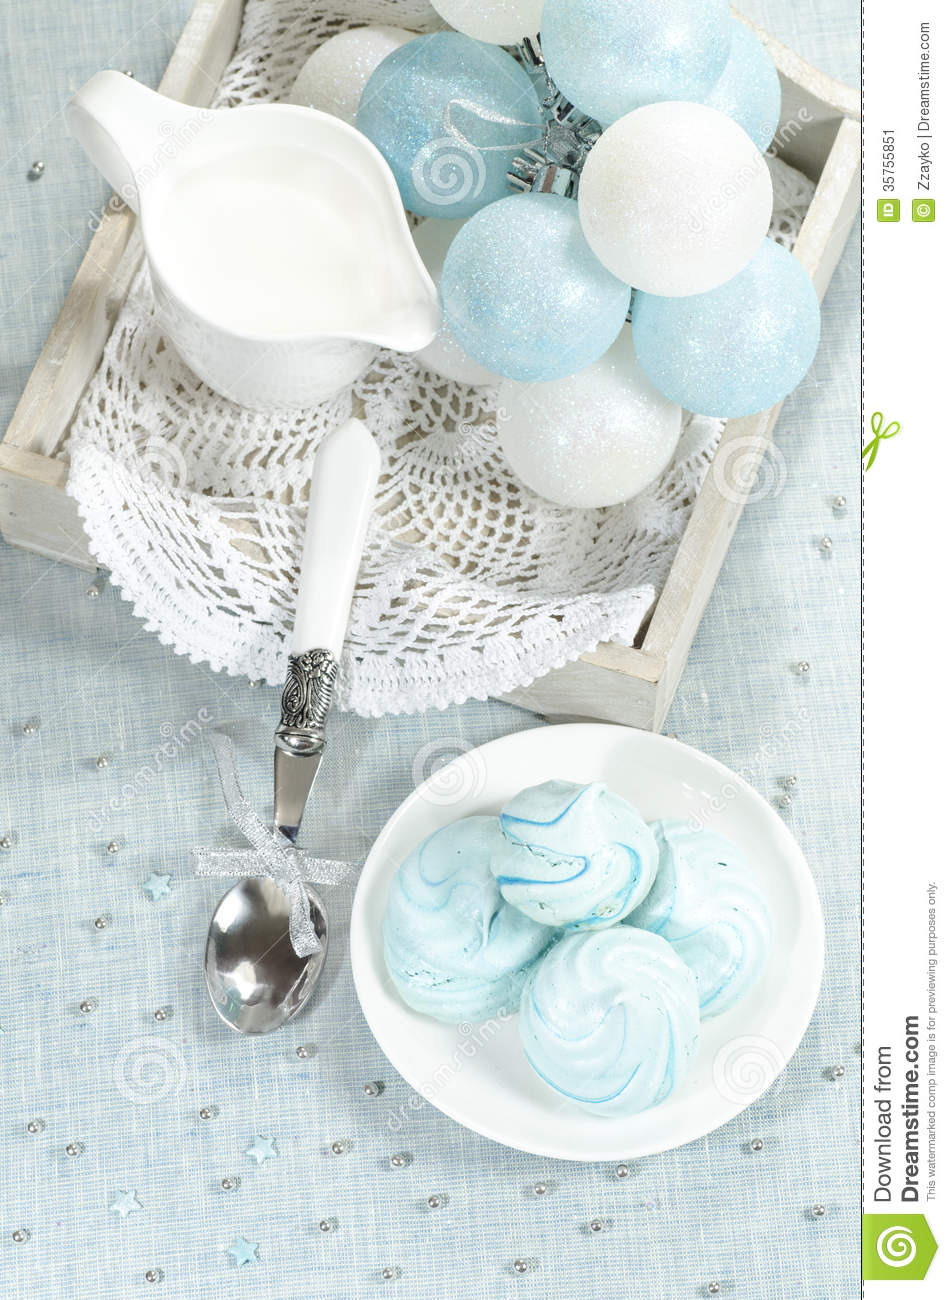 Christmas Decorations Azure Homemade Meringue Cookies And Cup Of Milk Stock Image Image 35755851